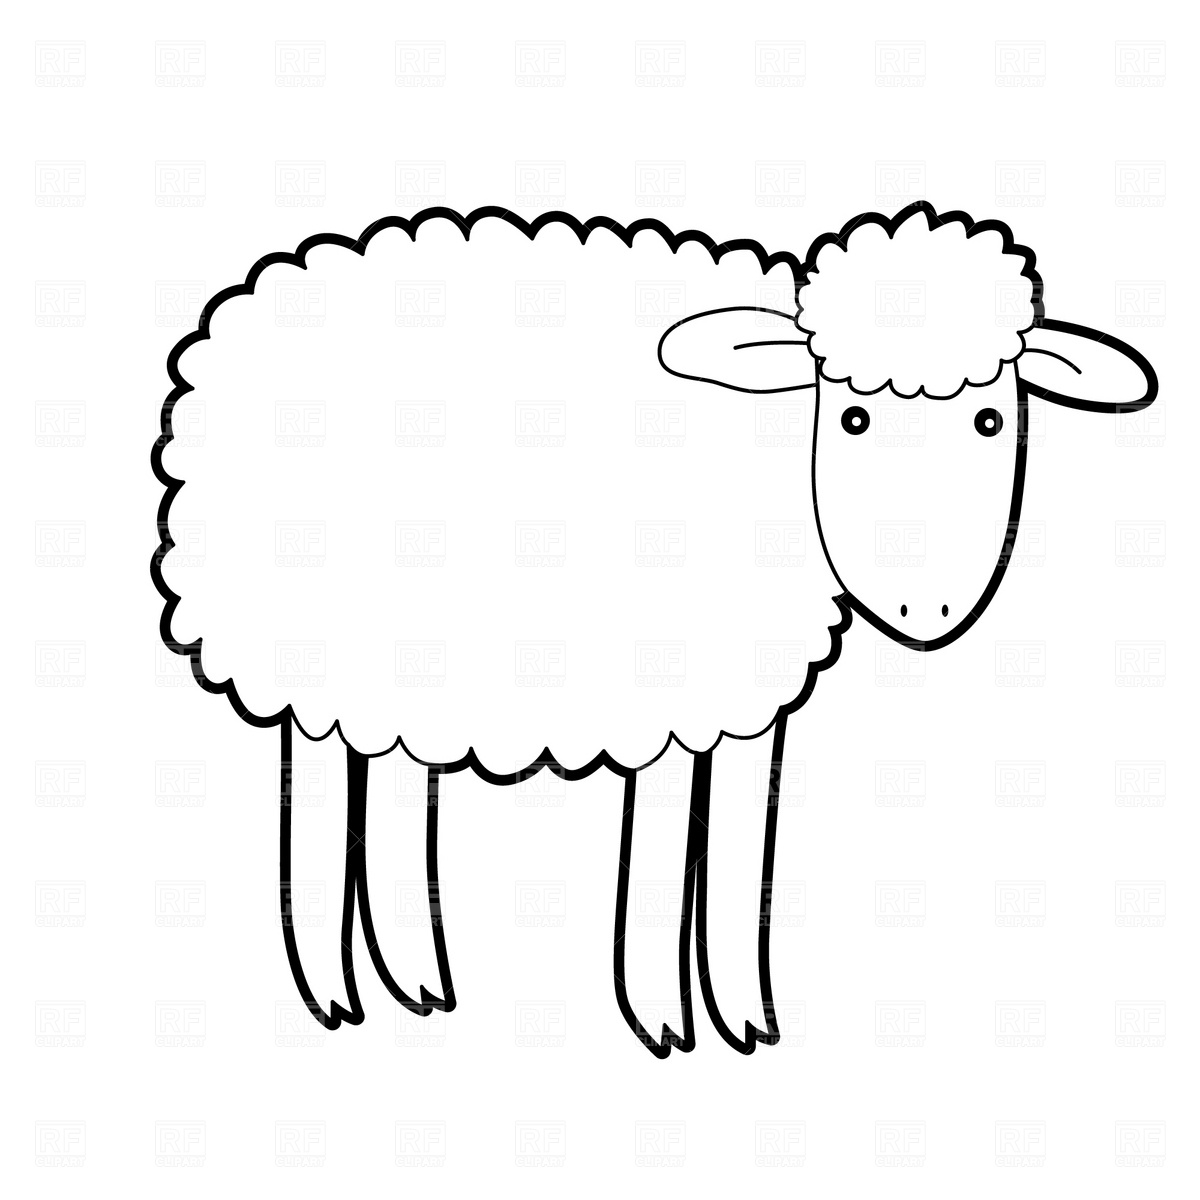 Cartoon panda free images. Lamb clipart sheep group